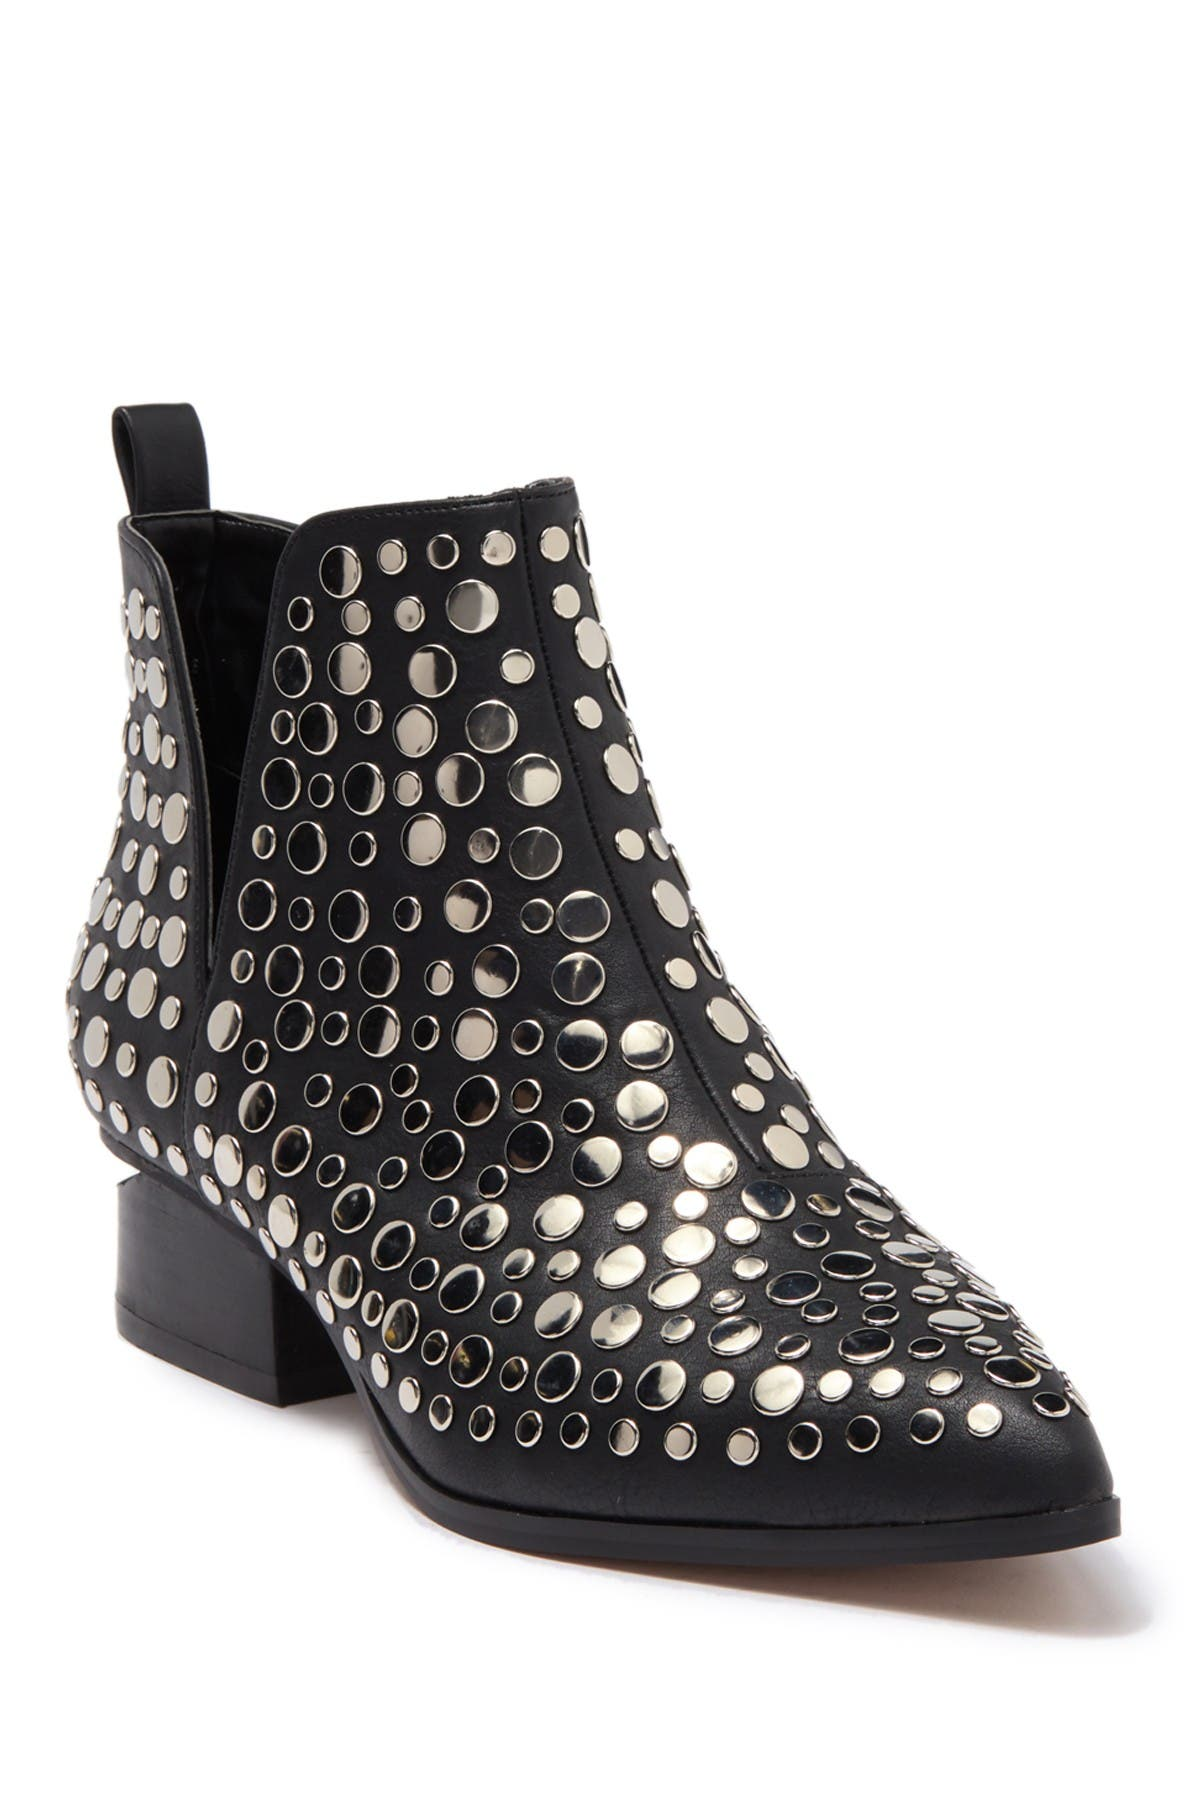 Image of Steve Madden Renata Studded Bootie